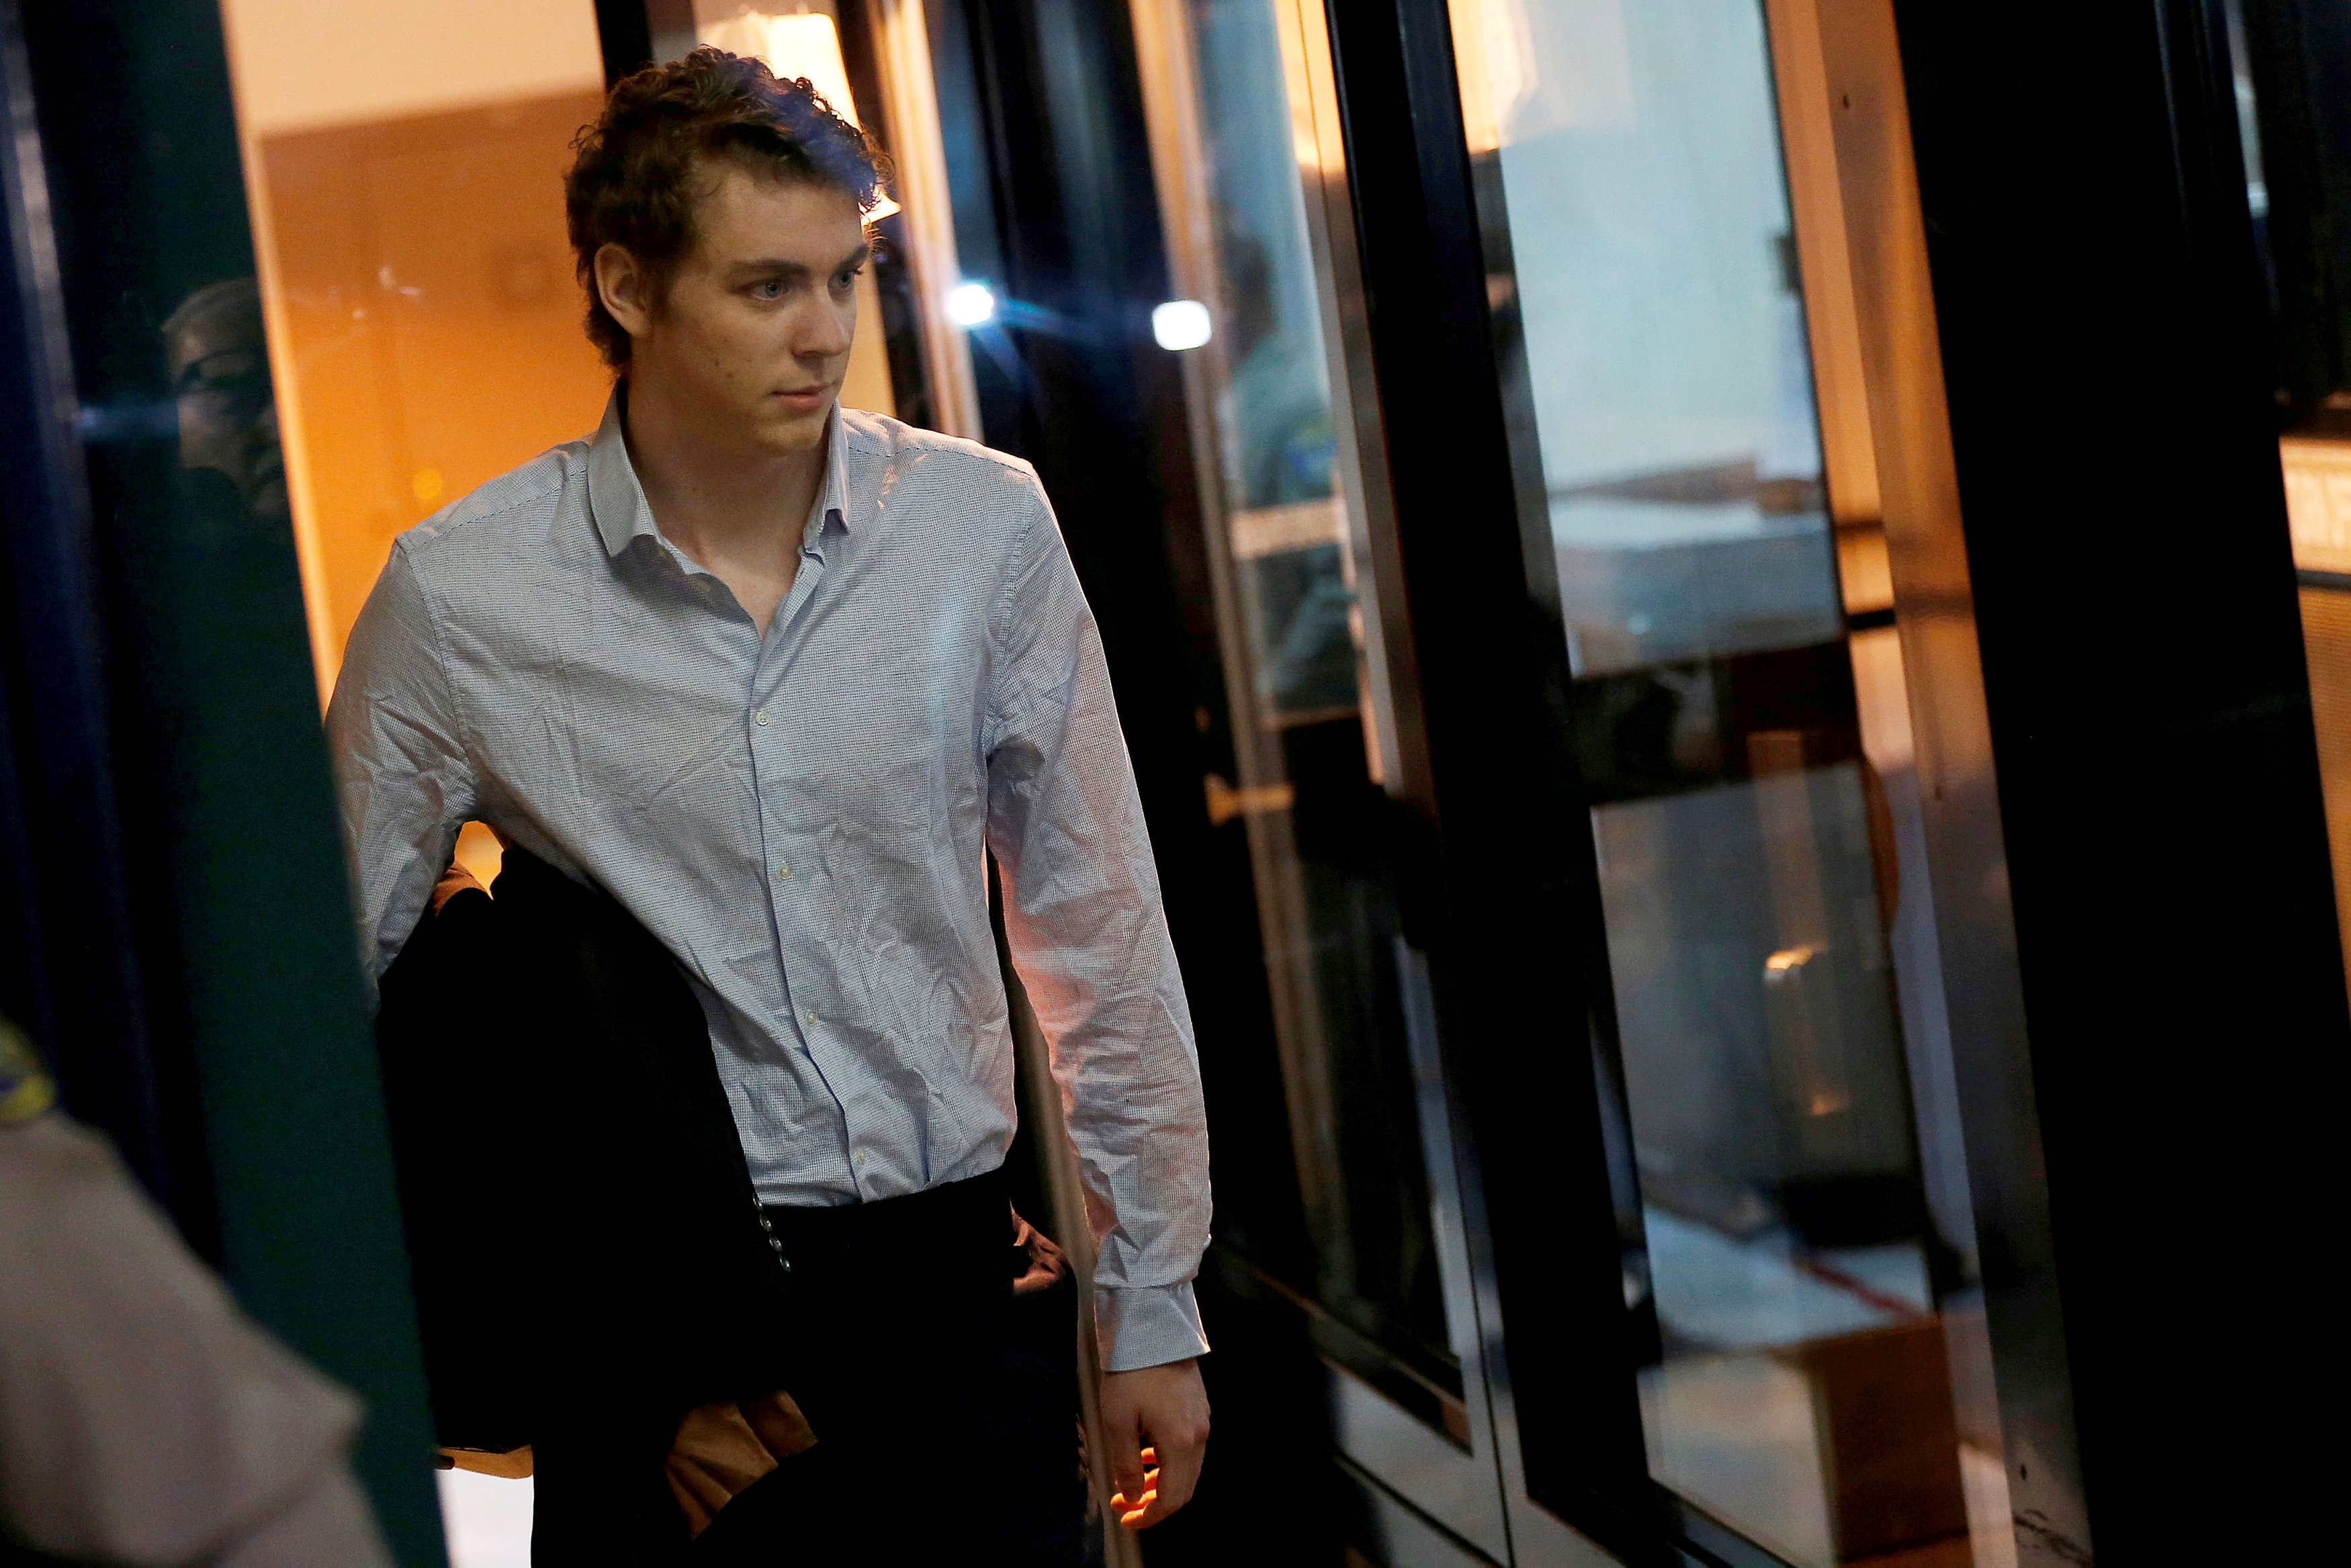 FILE PHOTO: Brock Turner, the former Stanford swimmer convicted of sexually assaulting an unconscious woman, leaves the Santa Clara County Jail in San Jose, California, U.S. September 2, 2016. REUTERS/Stephen Lam/File Photo